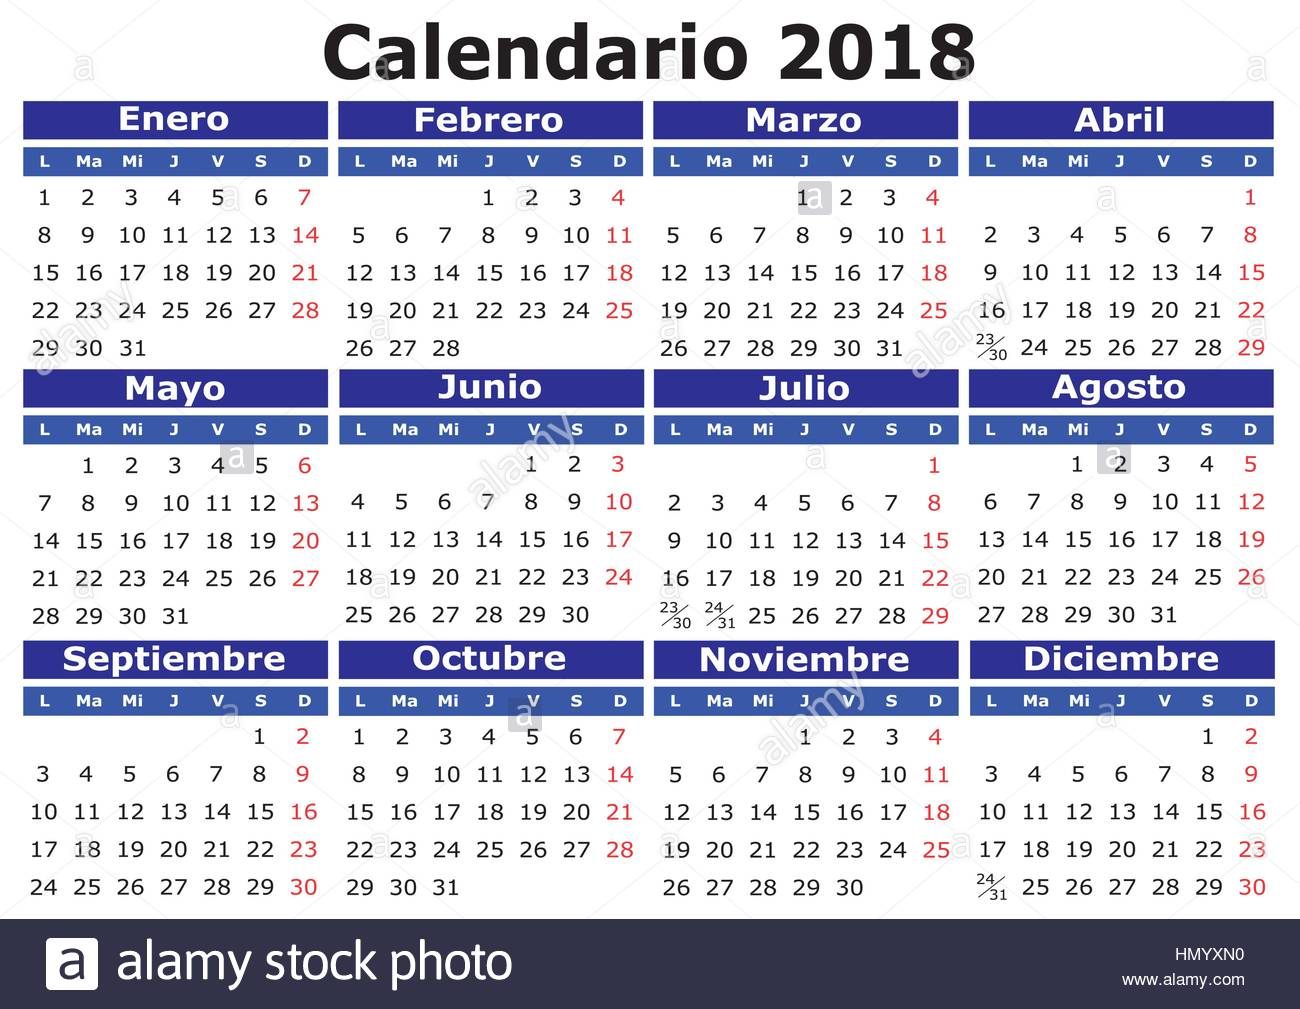 Calendario Con Week 2018.Calendario 2018 Stock Photos Calendario 2018 Stock Images